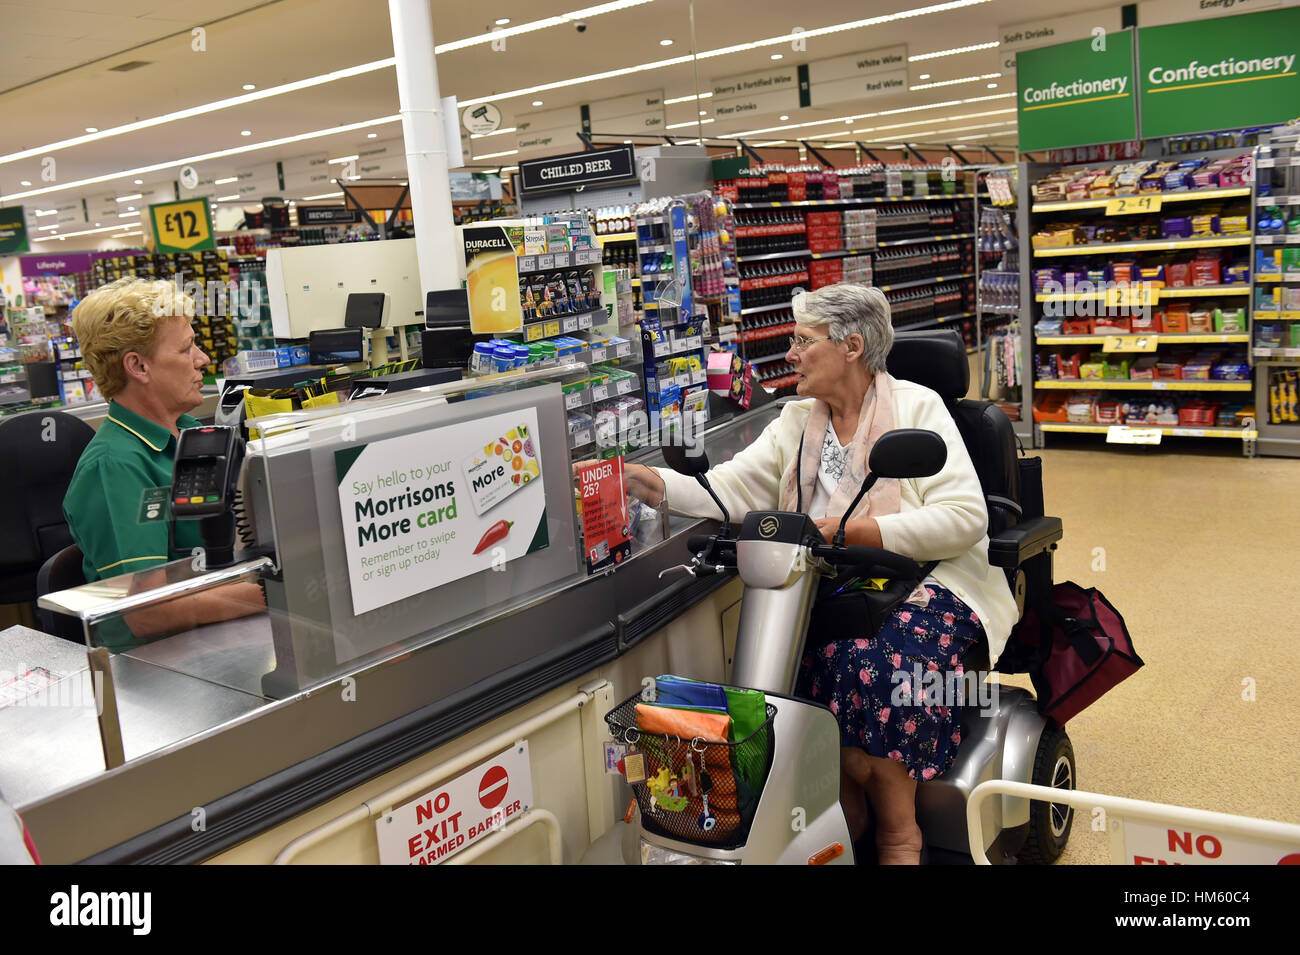 A disabled woman is helped at the supermarket checkout with her shopping while using her mobility scooter. - Stock Image